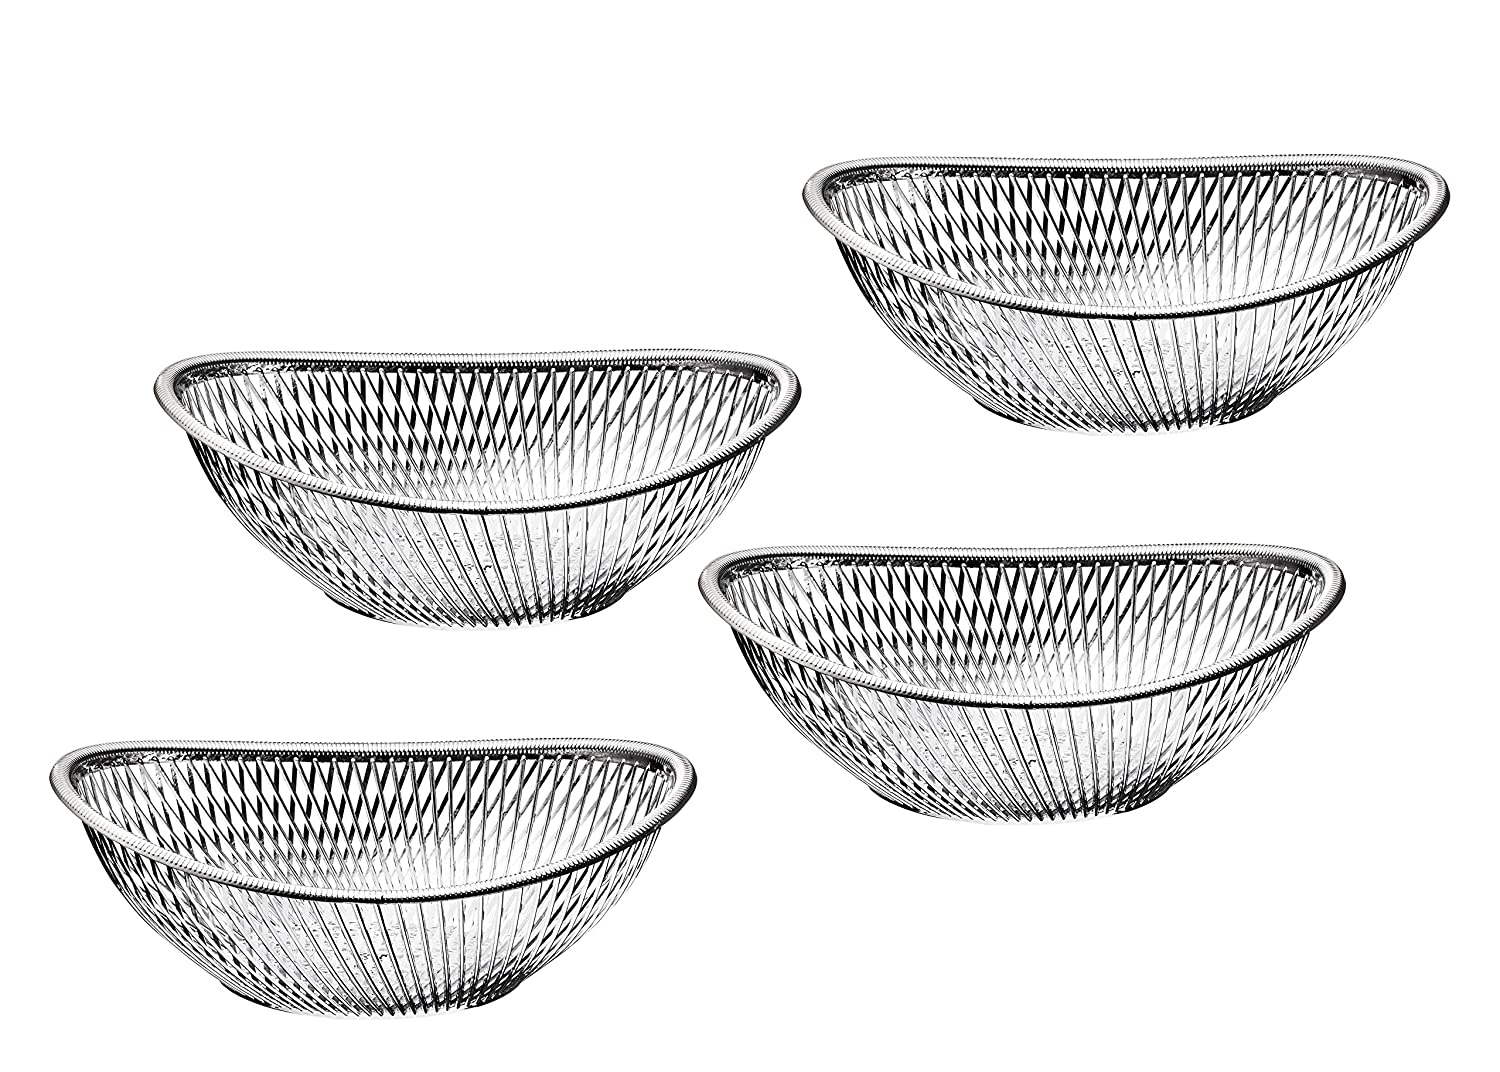 Impressive Creations Reusable Decorative Serving Basket – Plastic Fruit Basket – Bread Basket with Elegant Silver Finish – Functional and Modern Weaved Design – 4pk